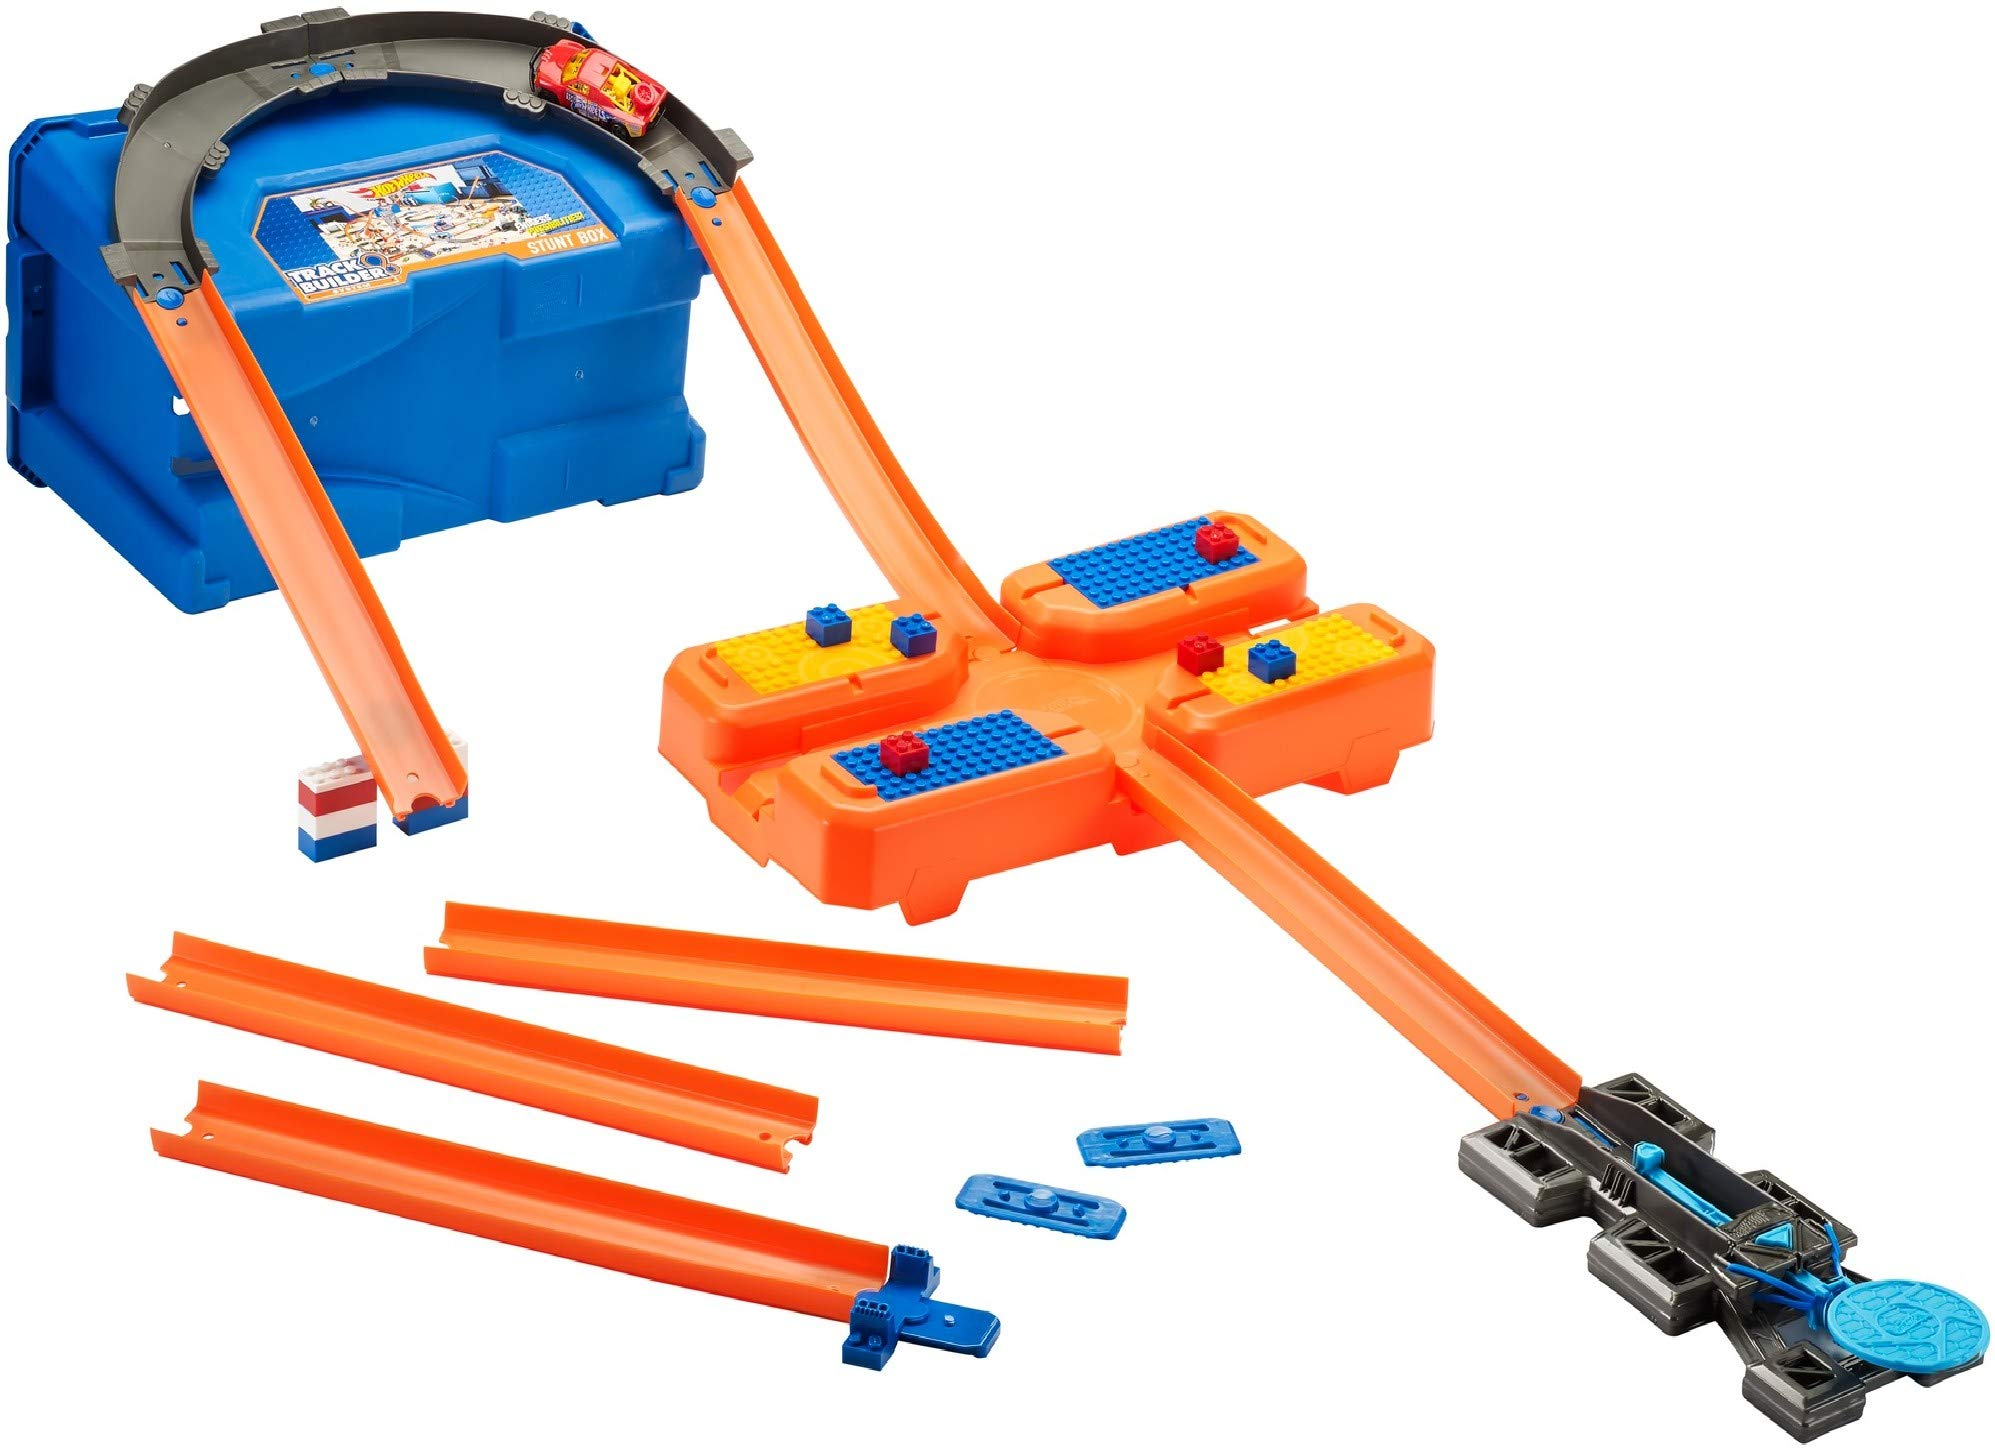 Hot Wheels Track Builder Stunt Box by Hot Wheels (Image #4)